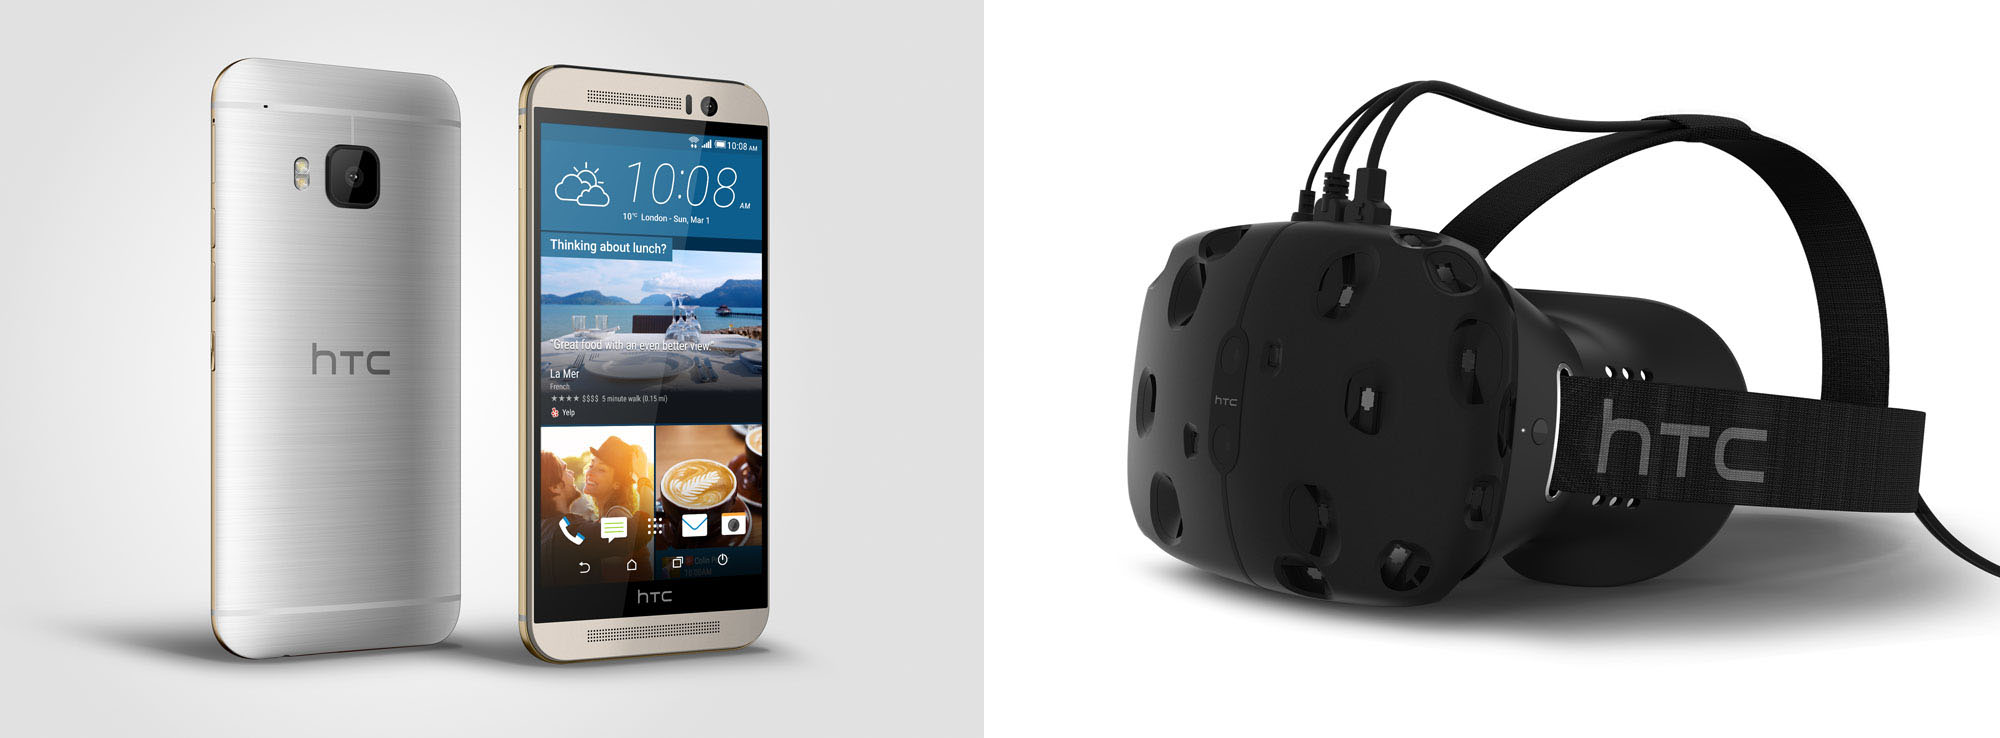 htc-one-m9-htc-vive-featured